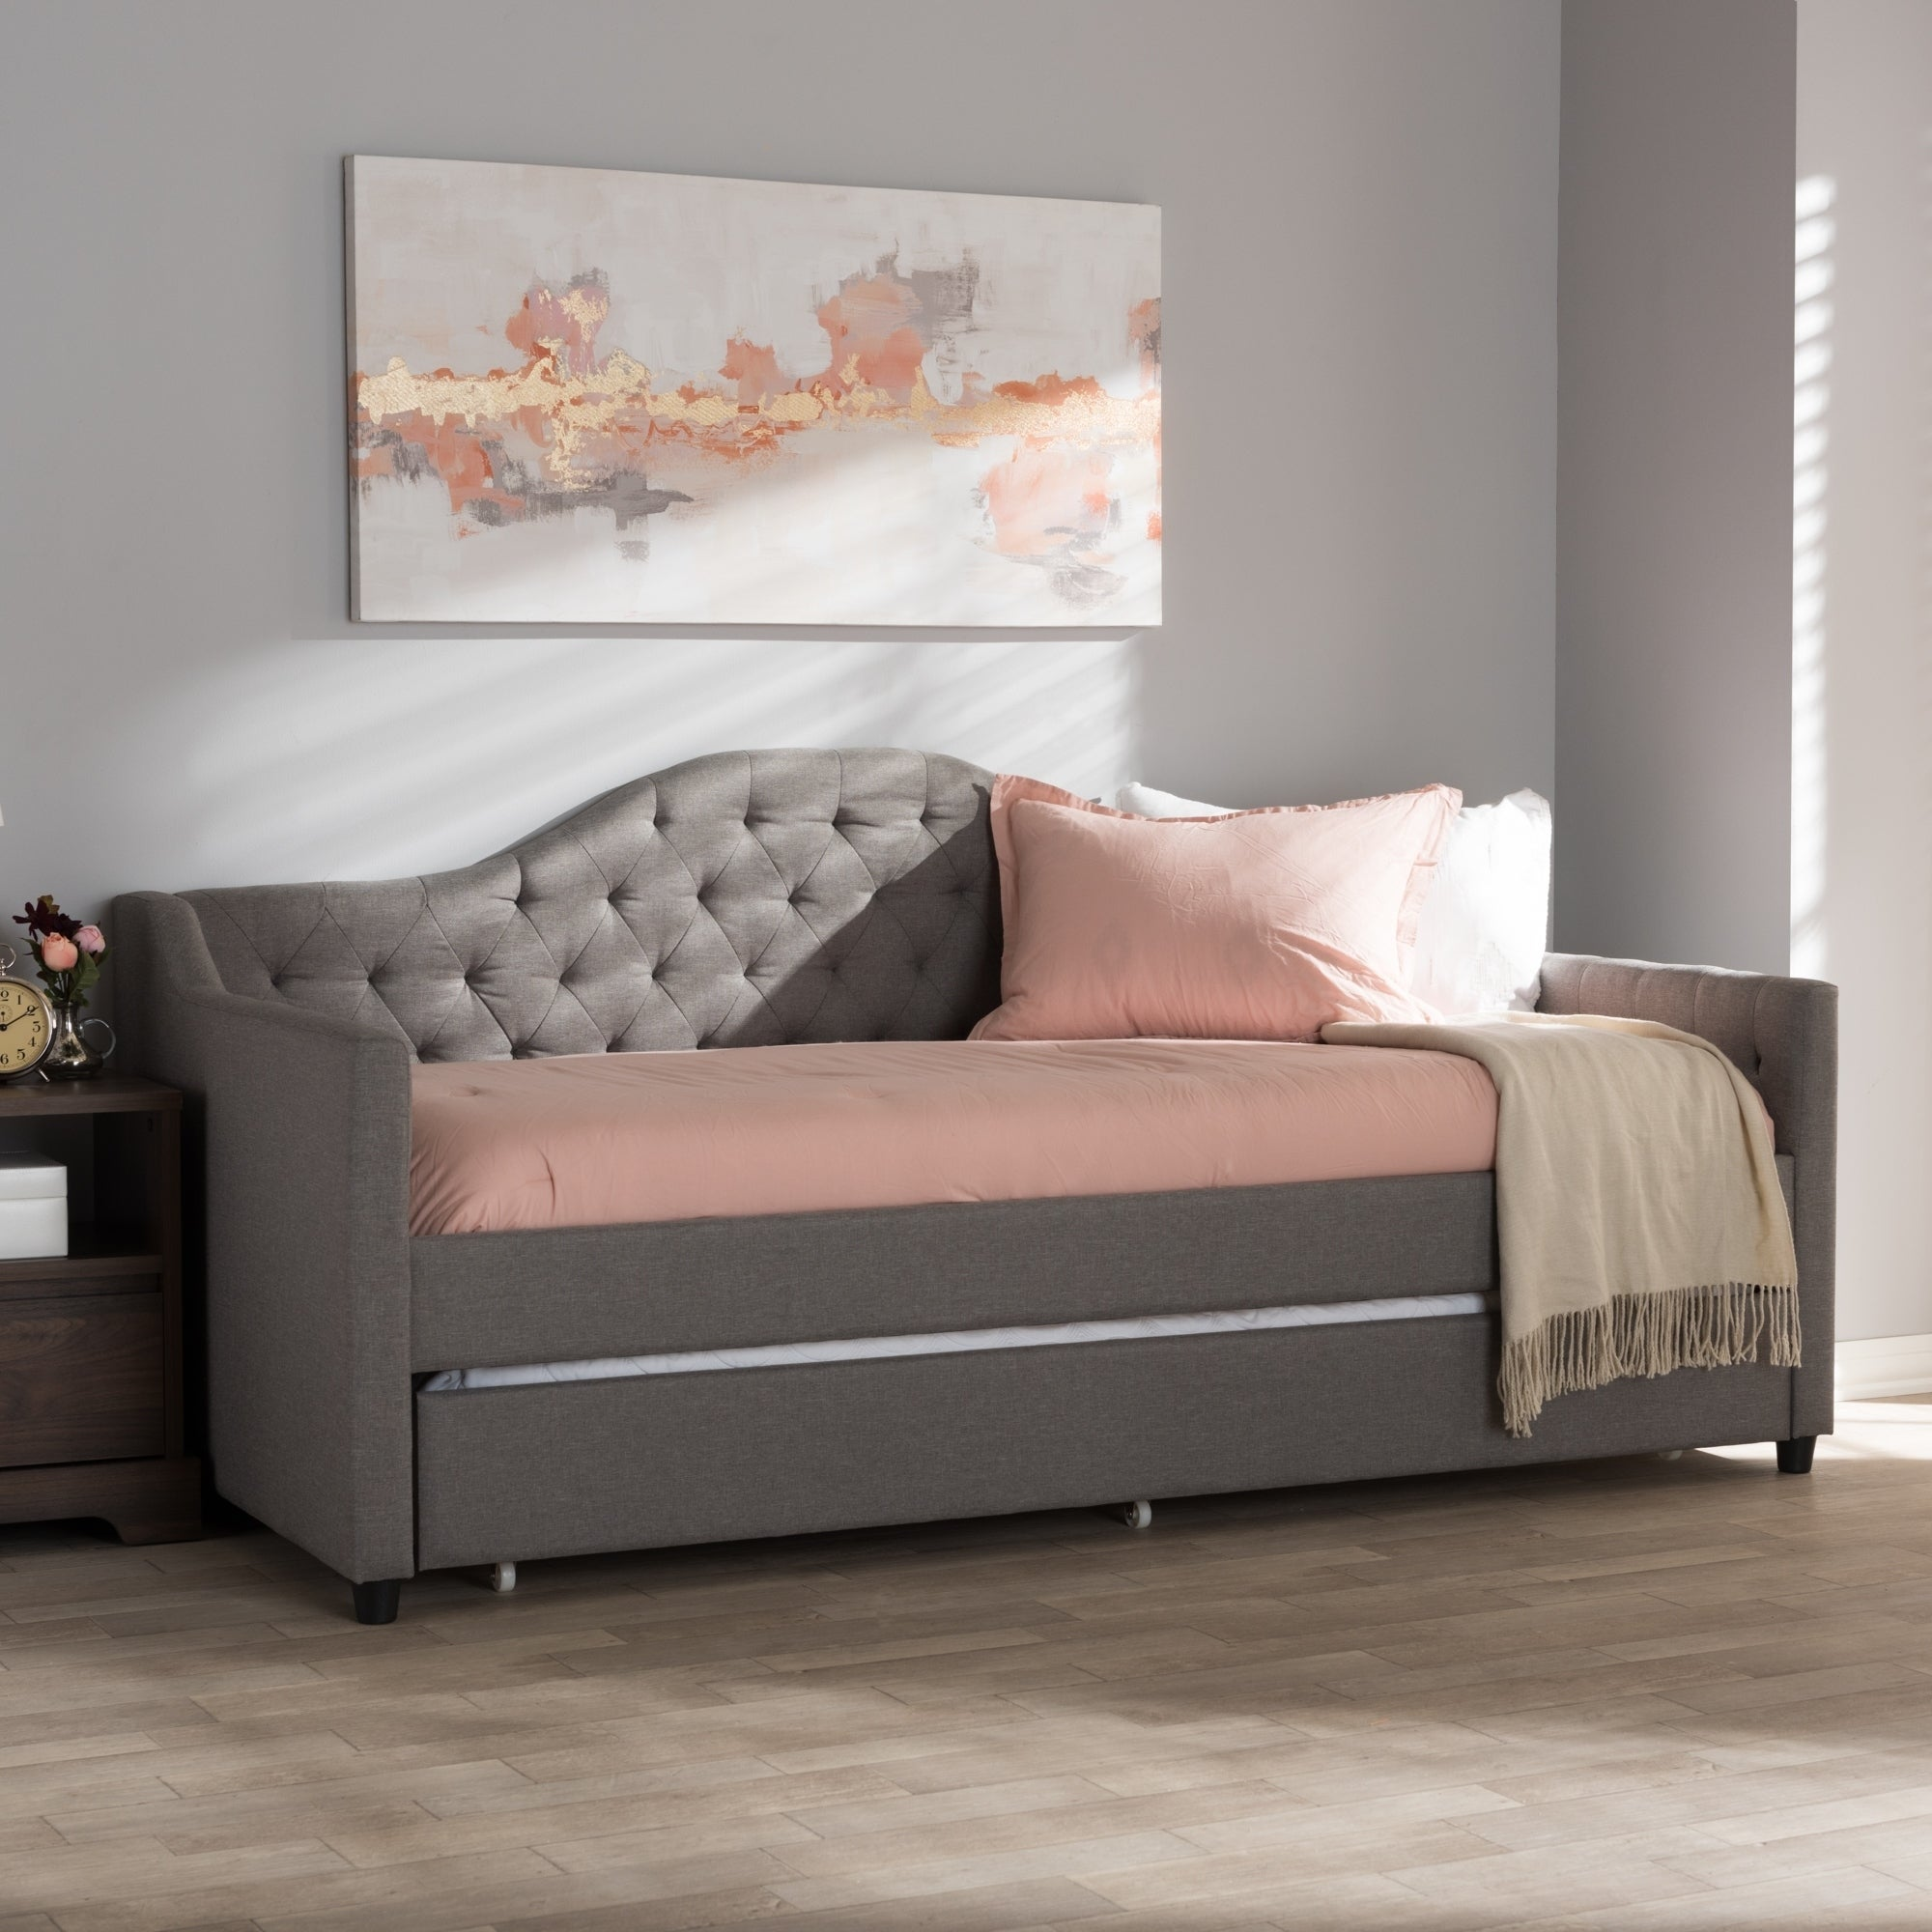 Contemporary Fabric Daybed With Trundle By Baxton Studio Free Shipping Today 18515198